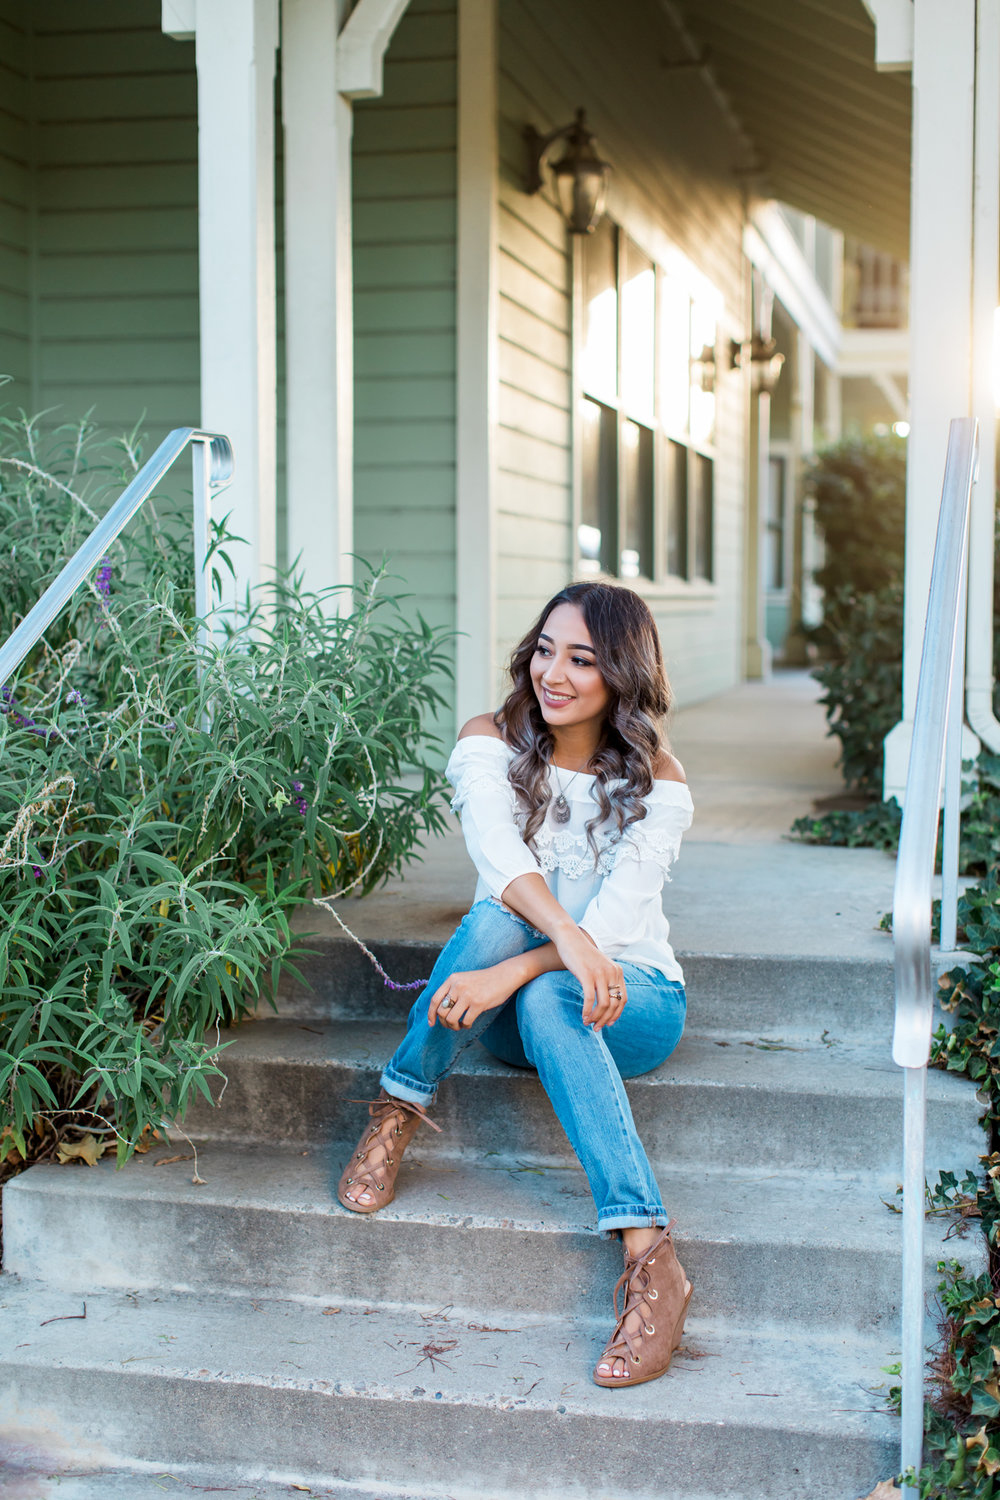 jillianmariephotography_californiaseniorportraits_Briana-9.jpg